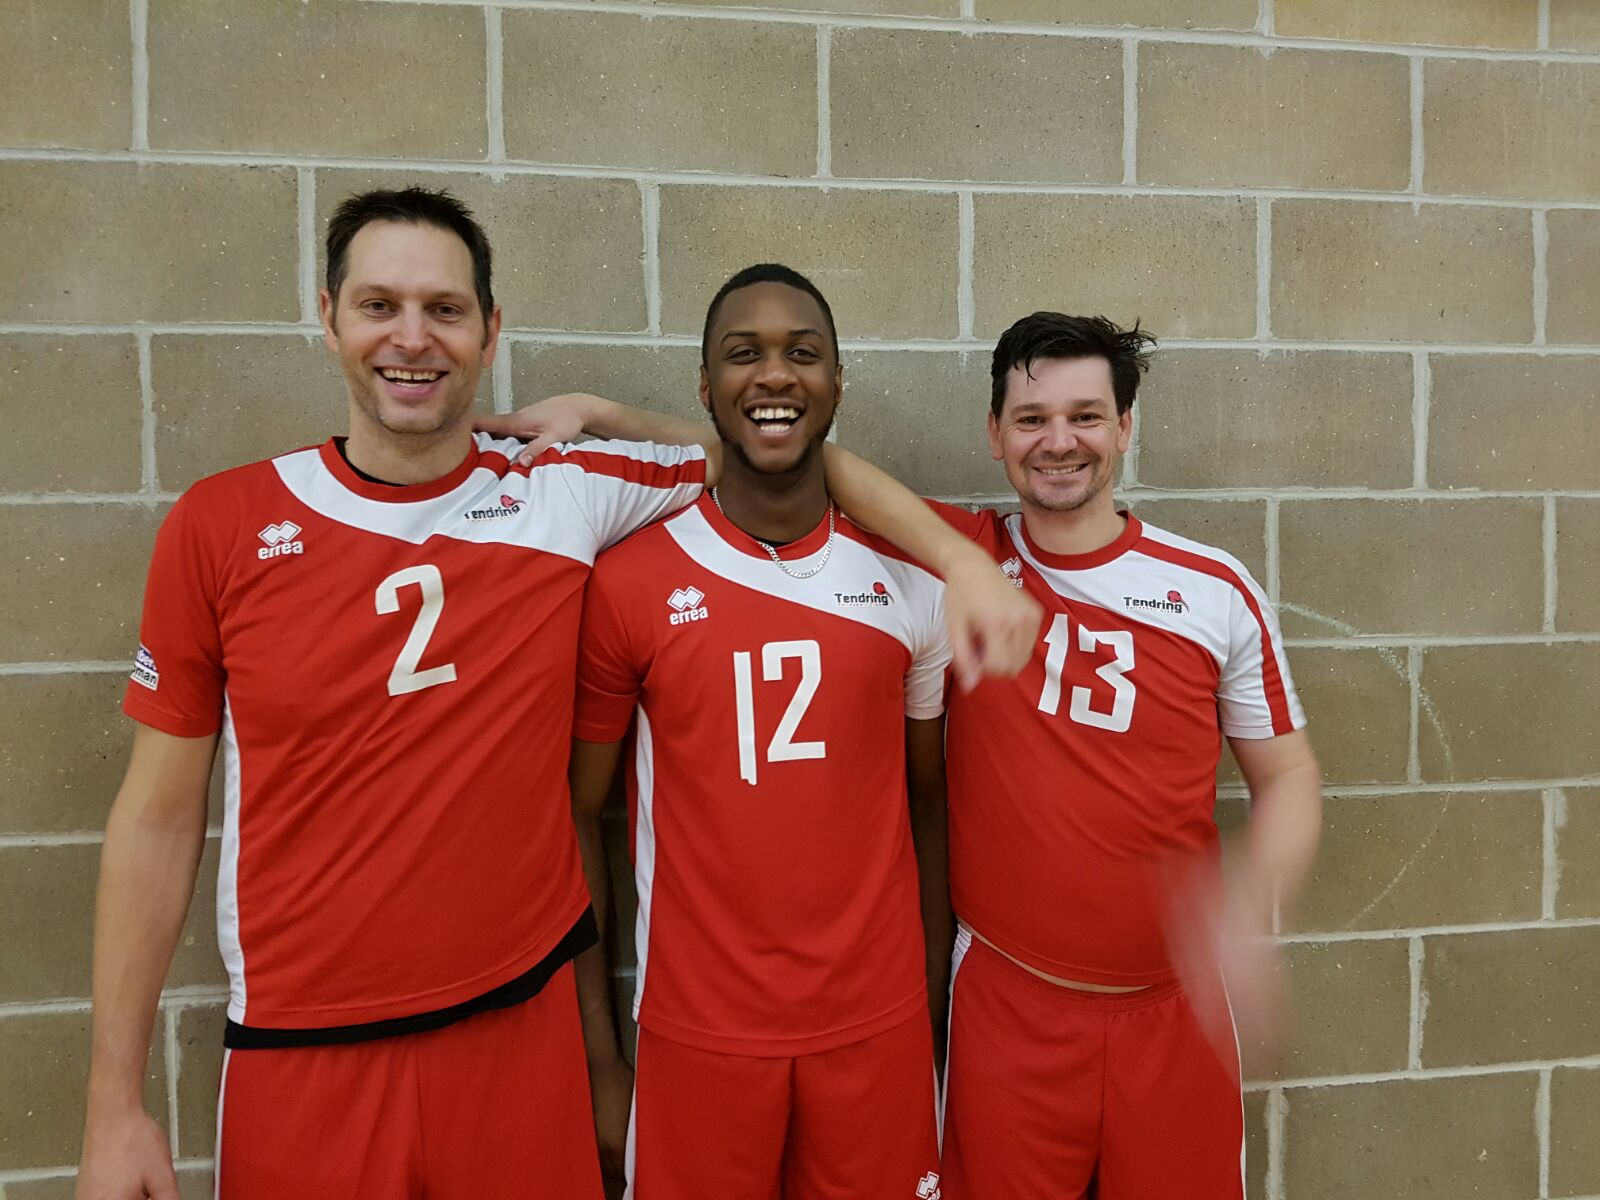 Tendring Volleyball Jermaine Miles with Porter and Masters